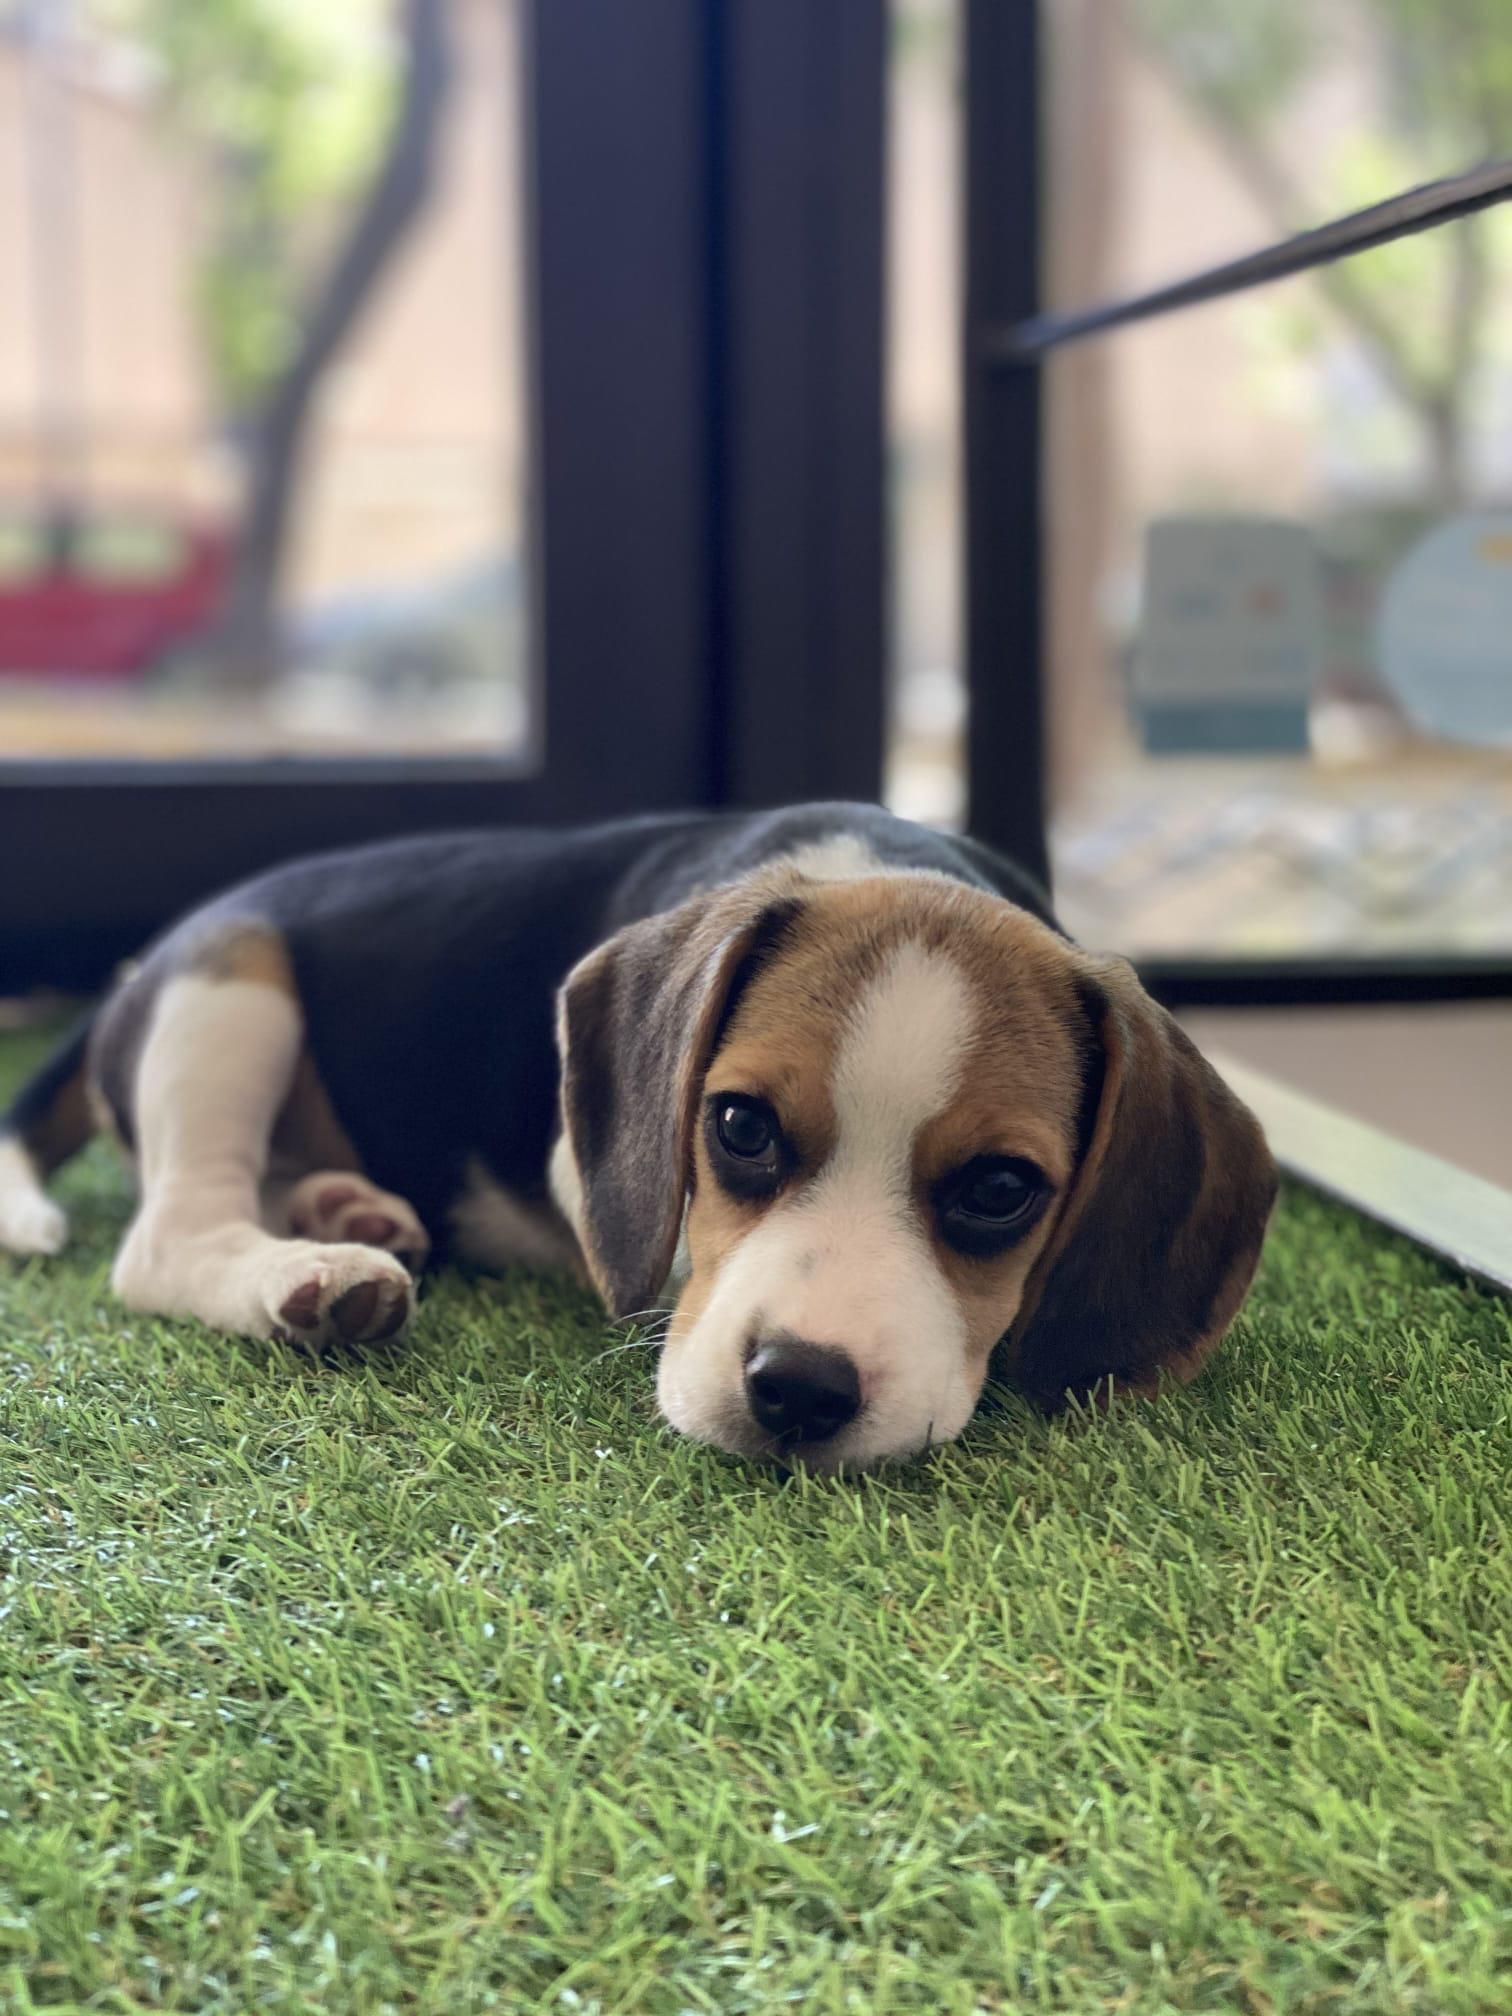 Meet Wifi Our First Dog Ever The Most Adorable Beagle Pup Ever 3 In 2020 Beagle Mix Beagle Puppy Cute Beagles